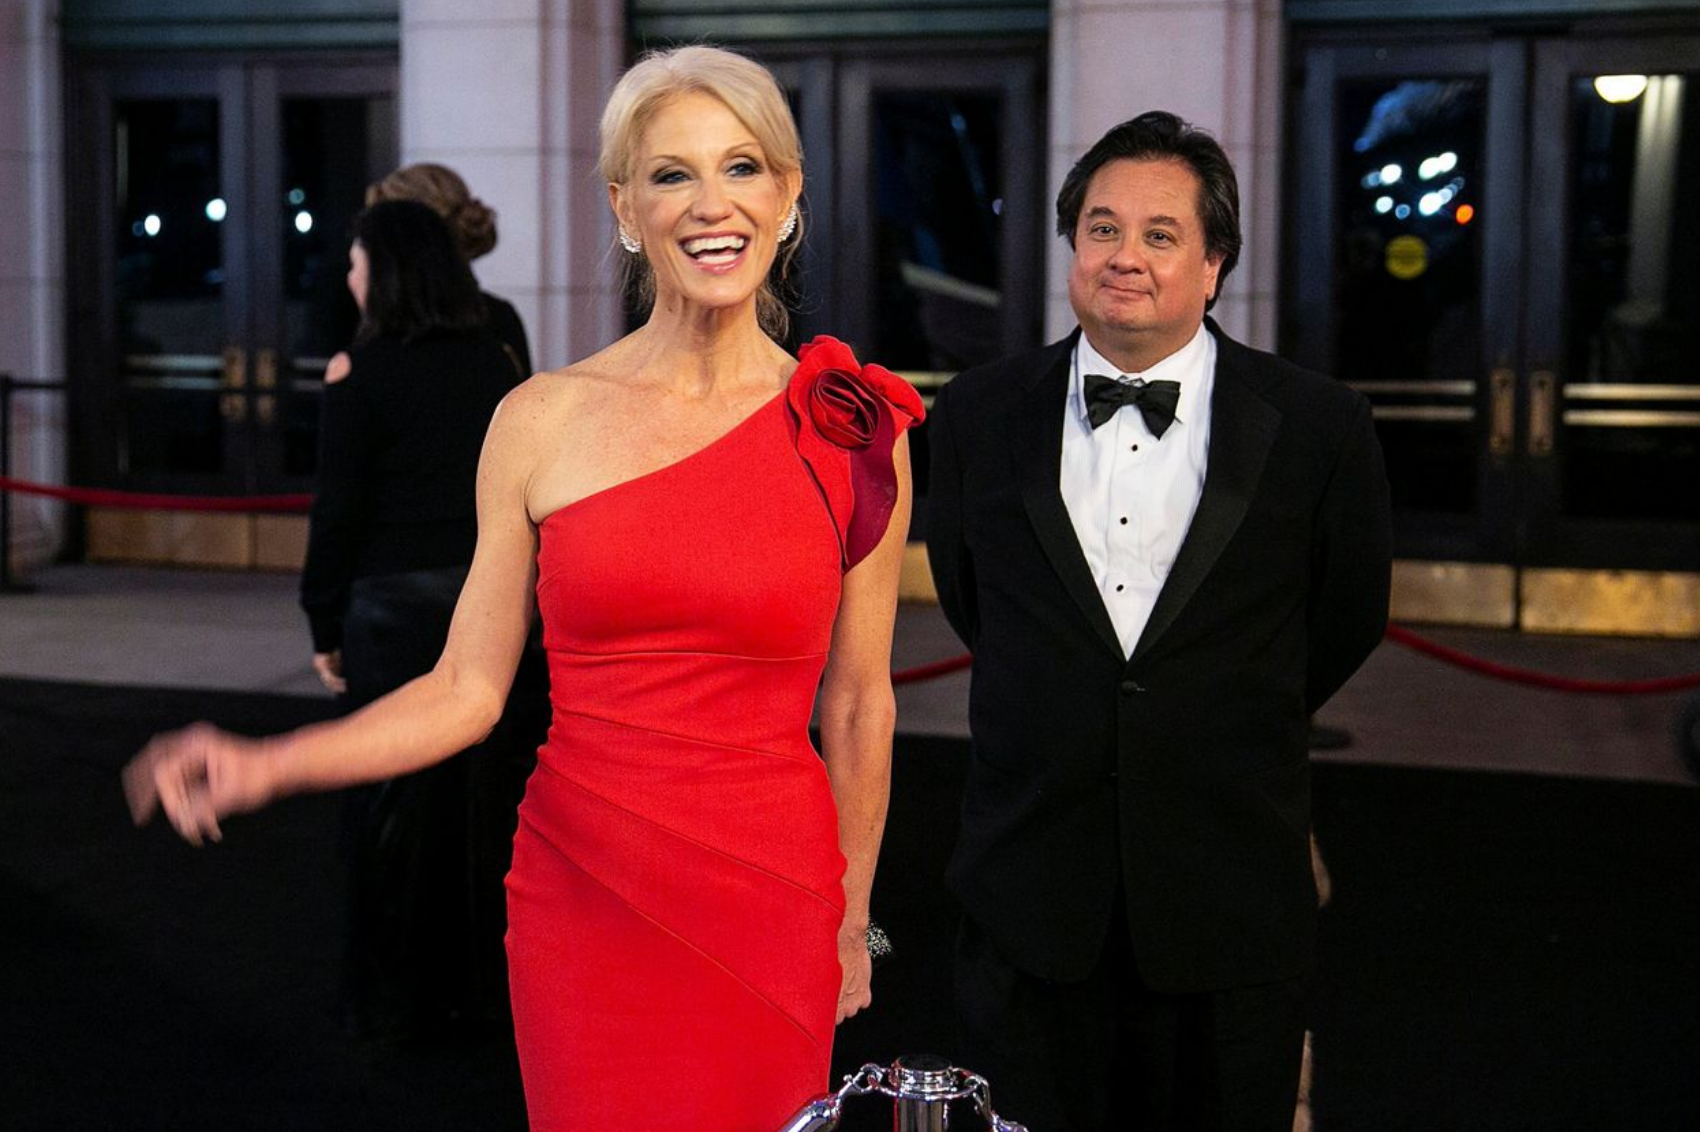 Kellyanne Conway To Leave White House As Trump Divisiveness Indeed Hits Close To Home